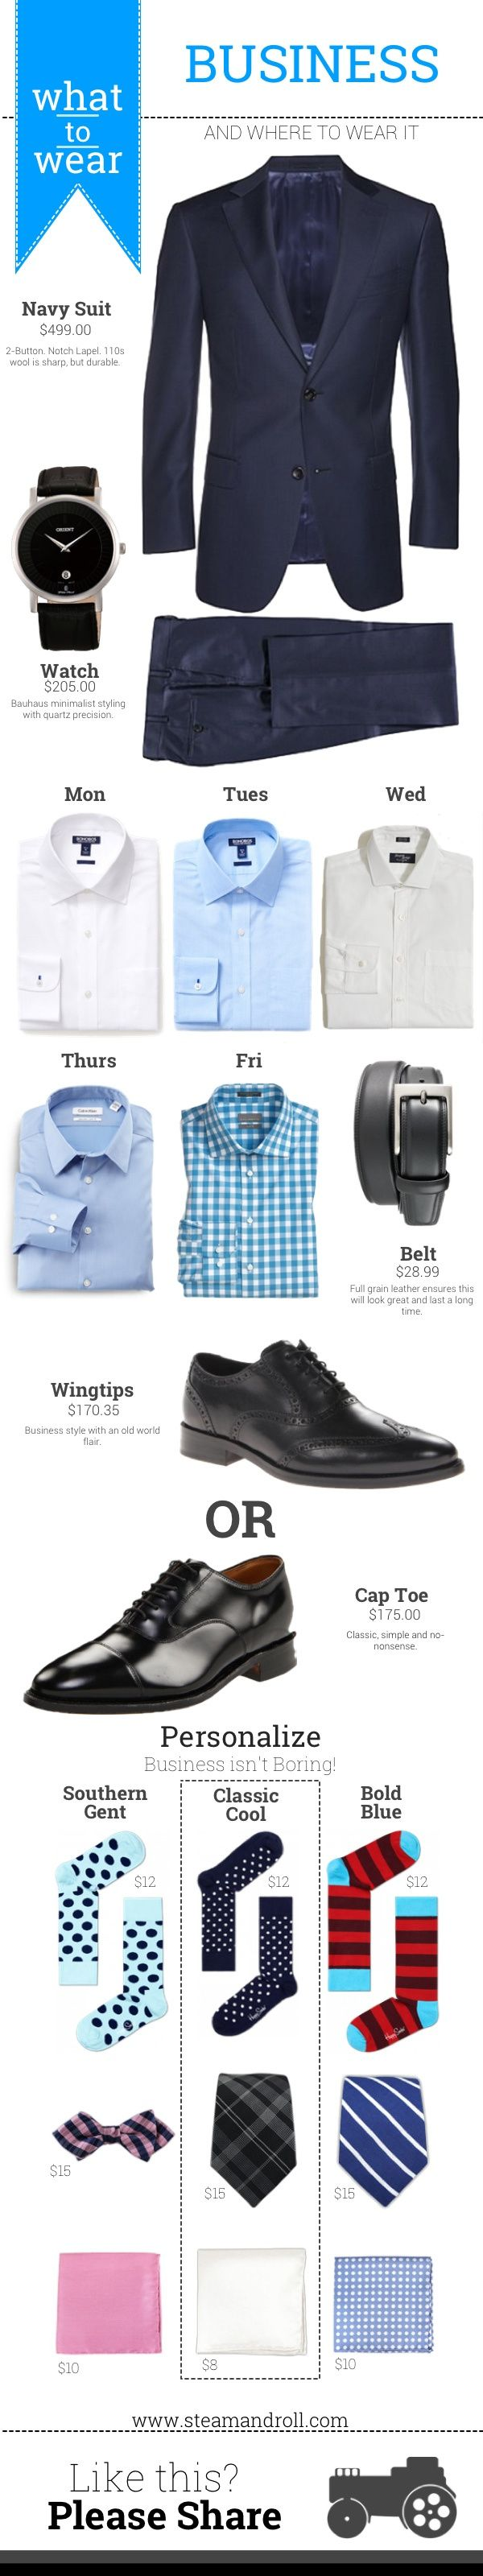 When your workplace requires a business dress code, this is what to wear.